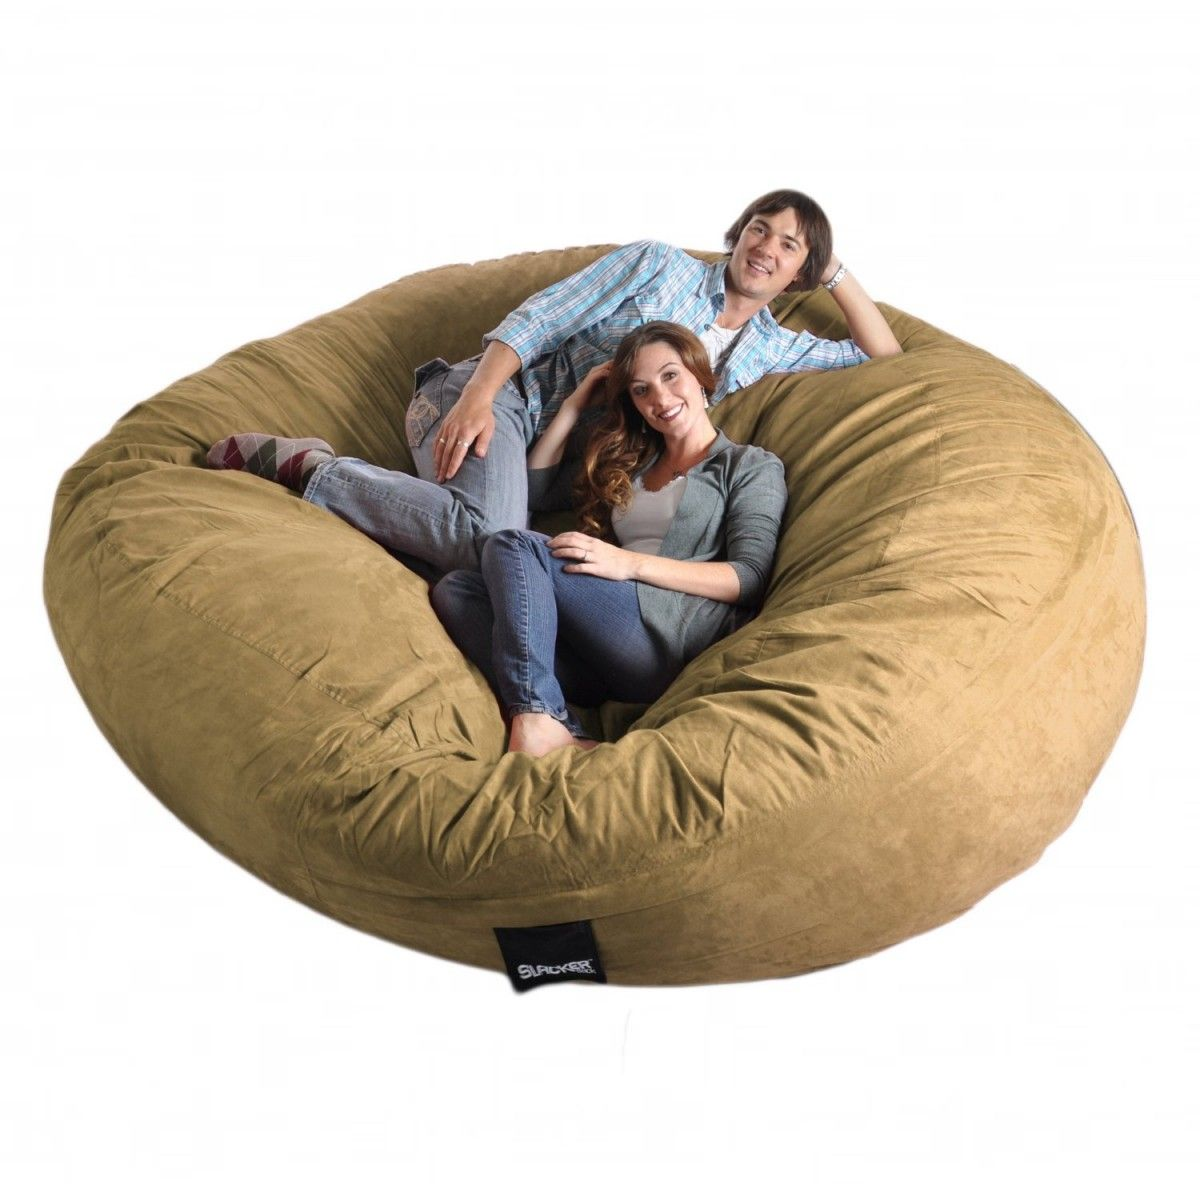 Giant bean bag chairs for adults - Extra Large Bean Bag Chairs Http Www Mybarnacles Com